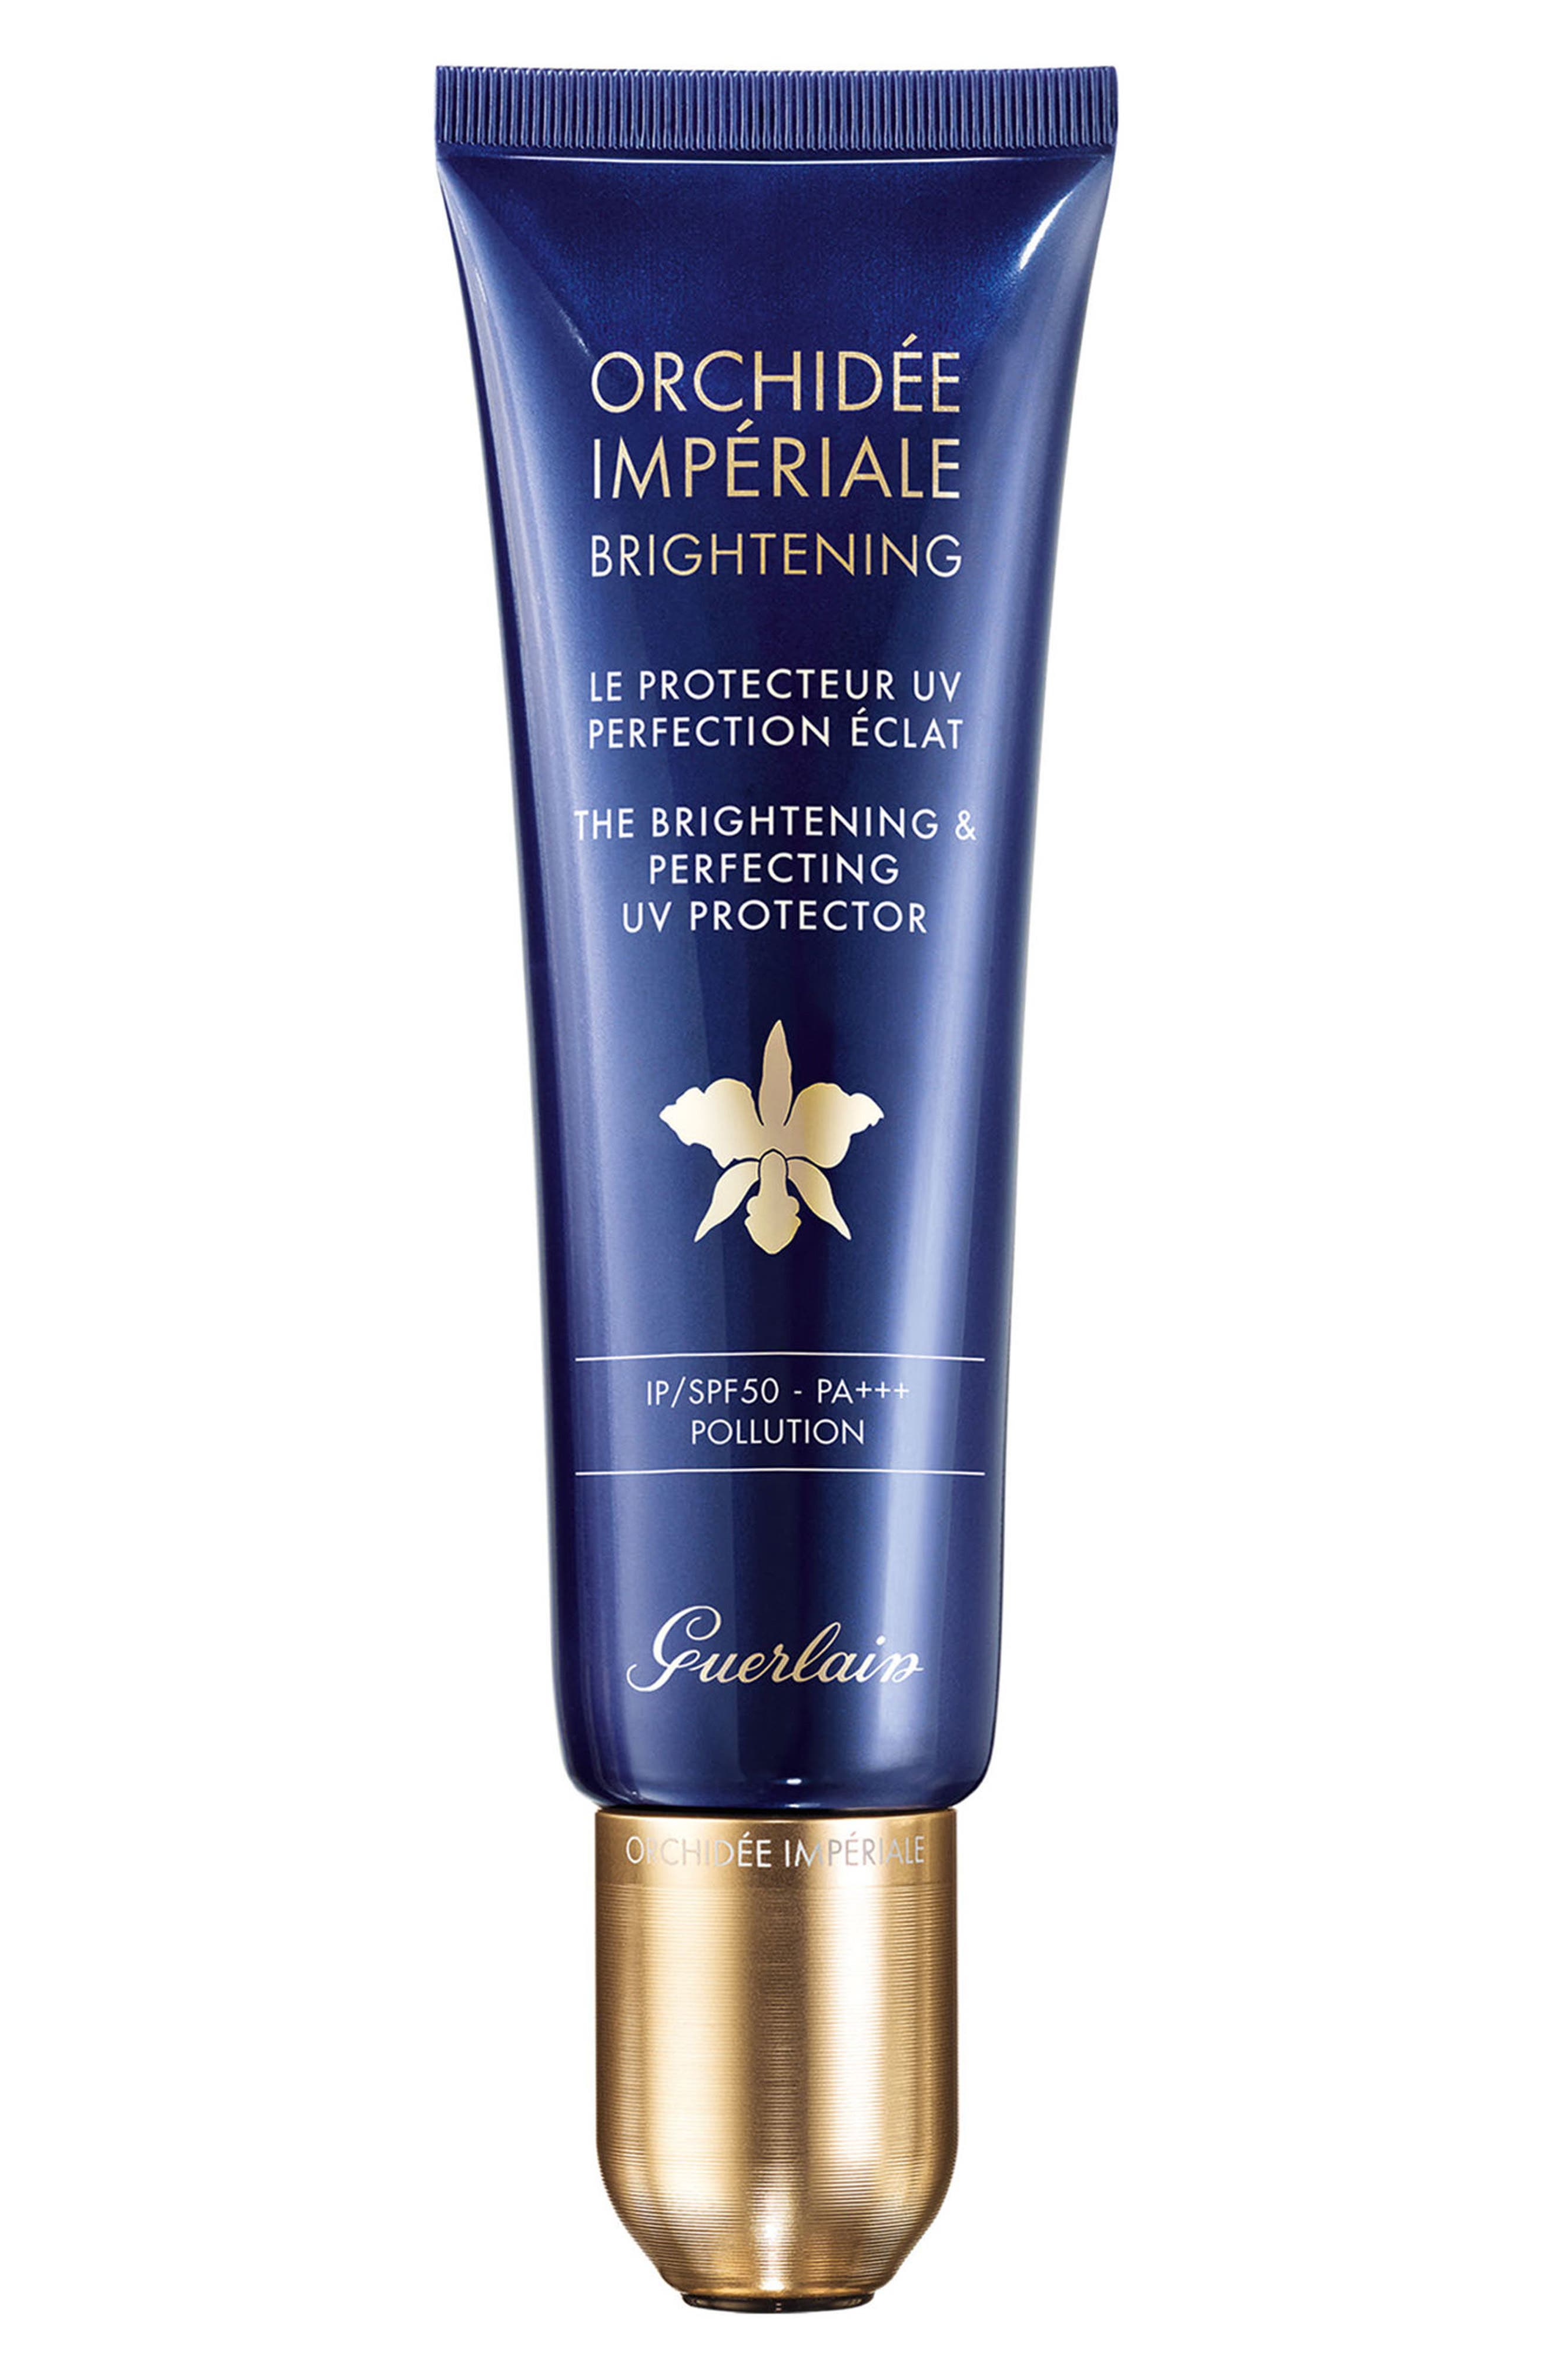 Orchidée Impériale The Brightening & Perfecting UV Protector SPF 50,                         Main,                         color, No Color